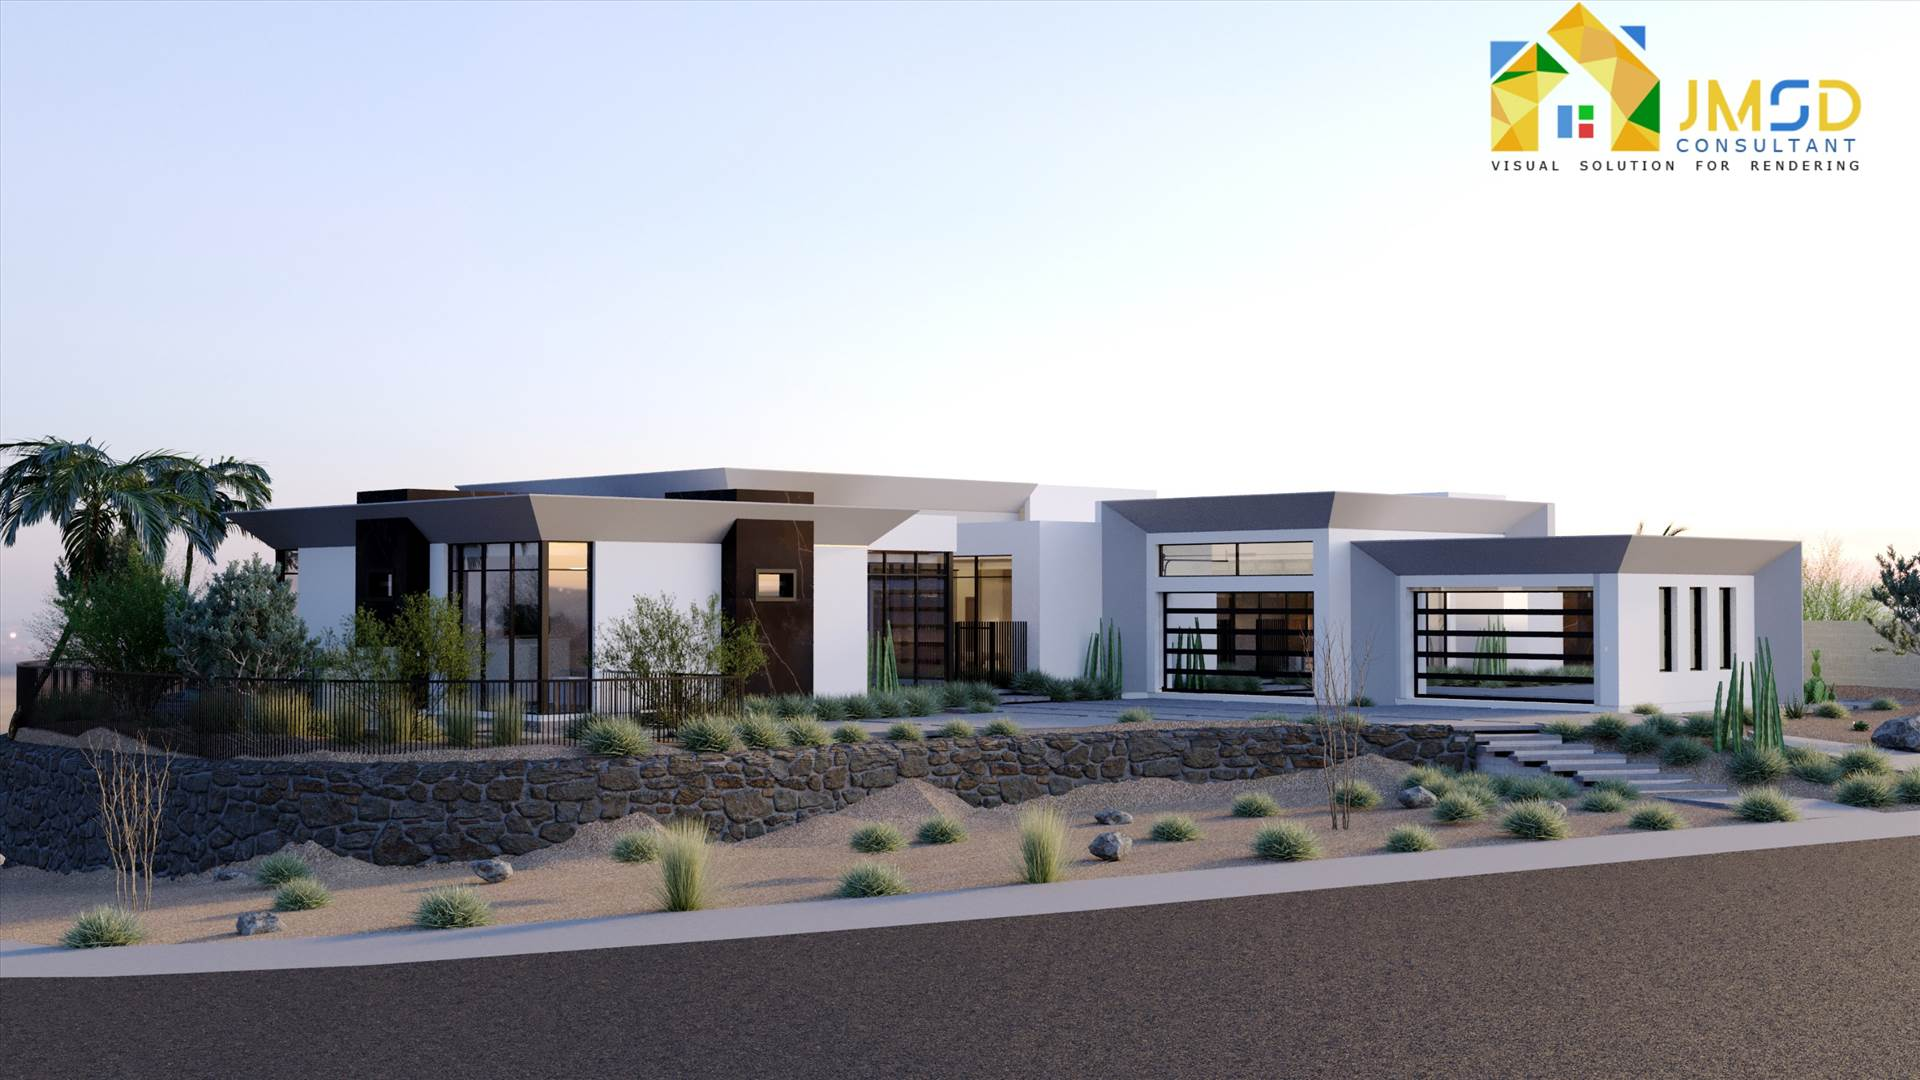 3D Property Rendering for Exterior Design of Modern Villa San Antonio Texas Aspirational quality CGI interior and exterior rendering to your property. 3D Rendering Services for Architectural and Real Estate Development. 